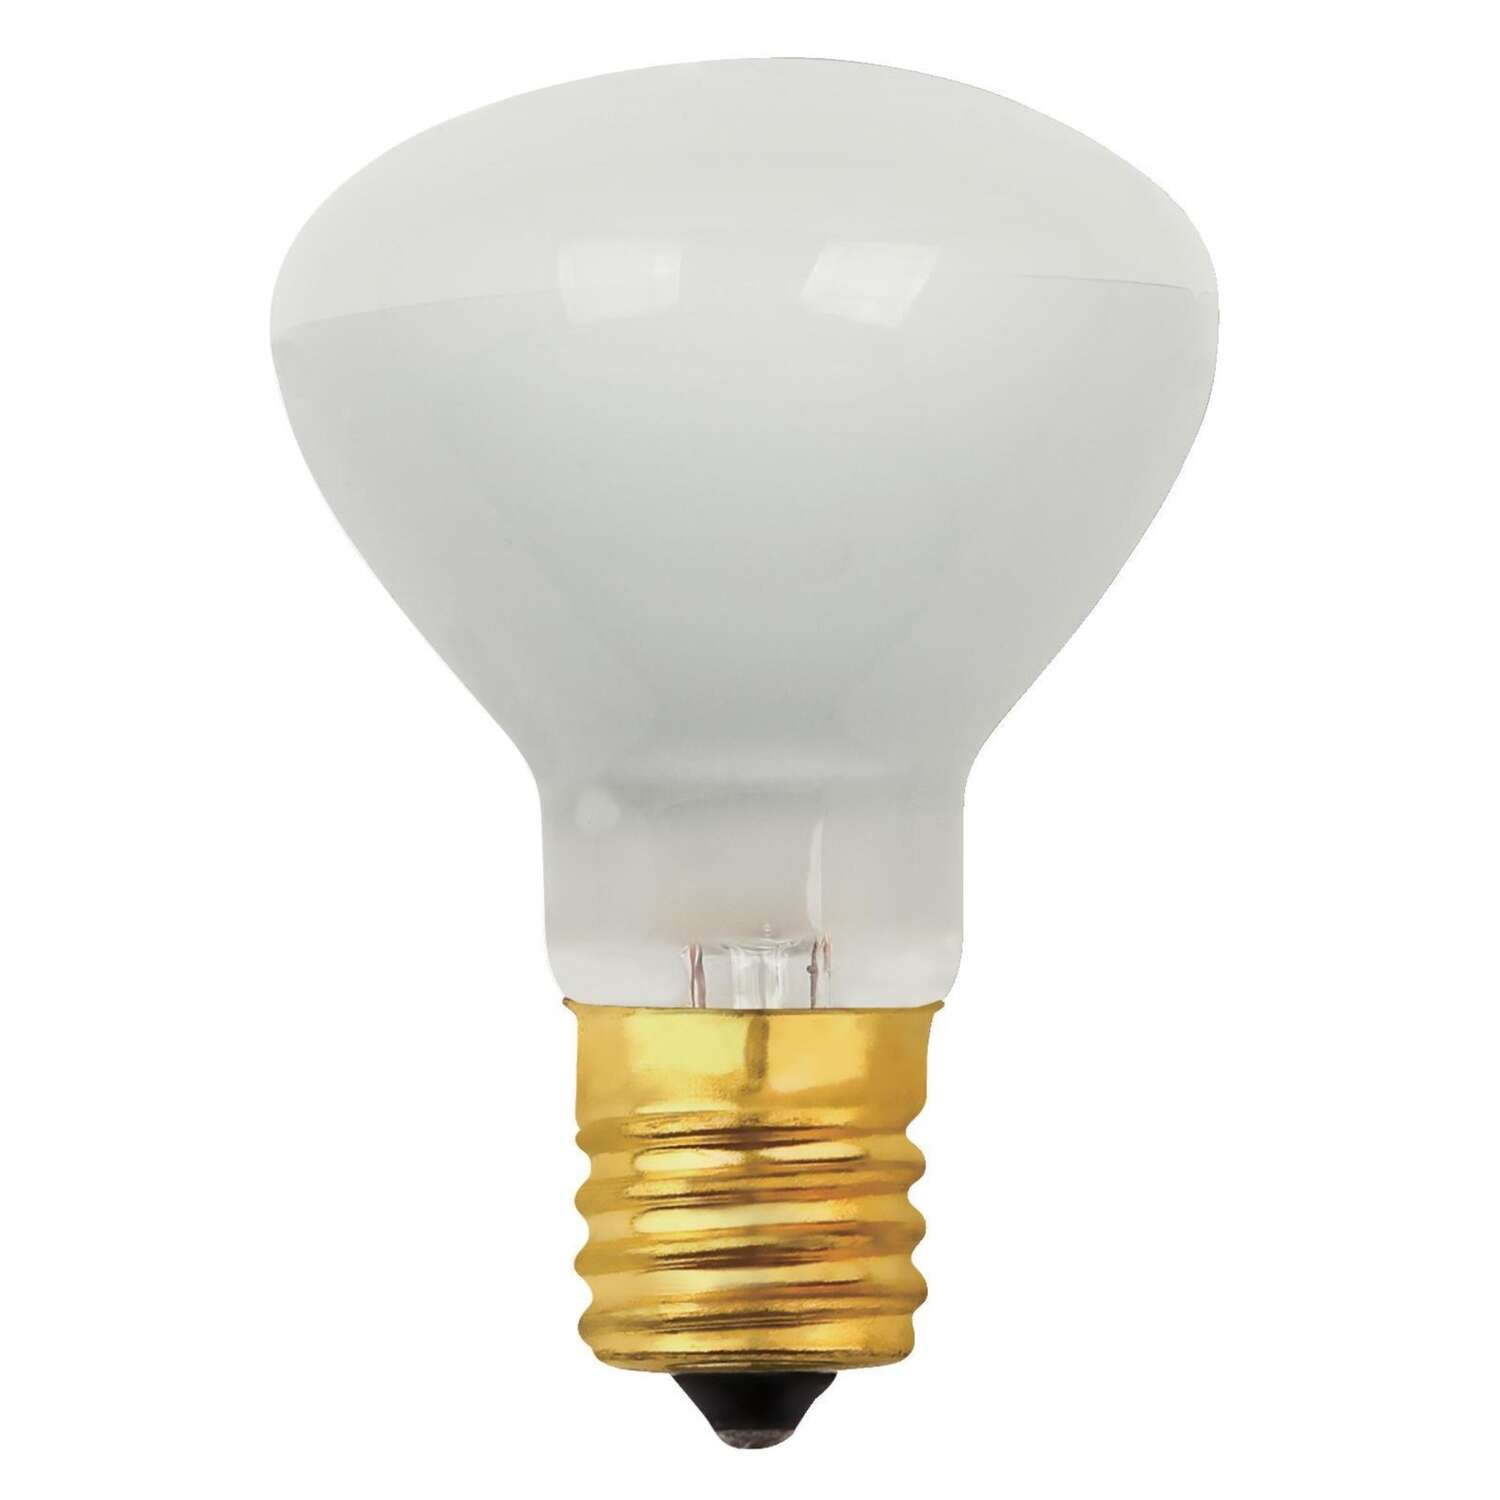 Westinghouse  40 watts R14  Floodlight  Incandescent Bulb  E17 (Intermediate)  White  1 pk